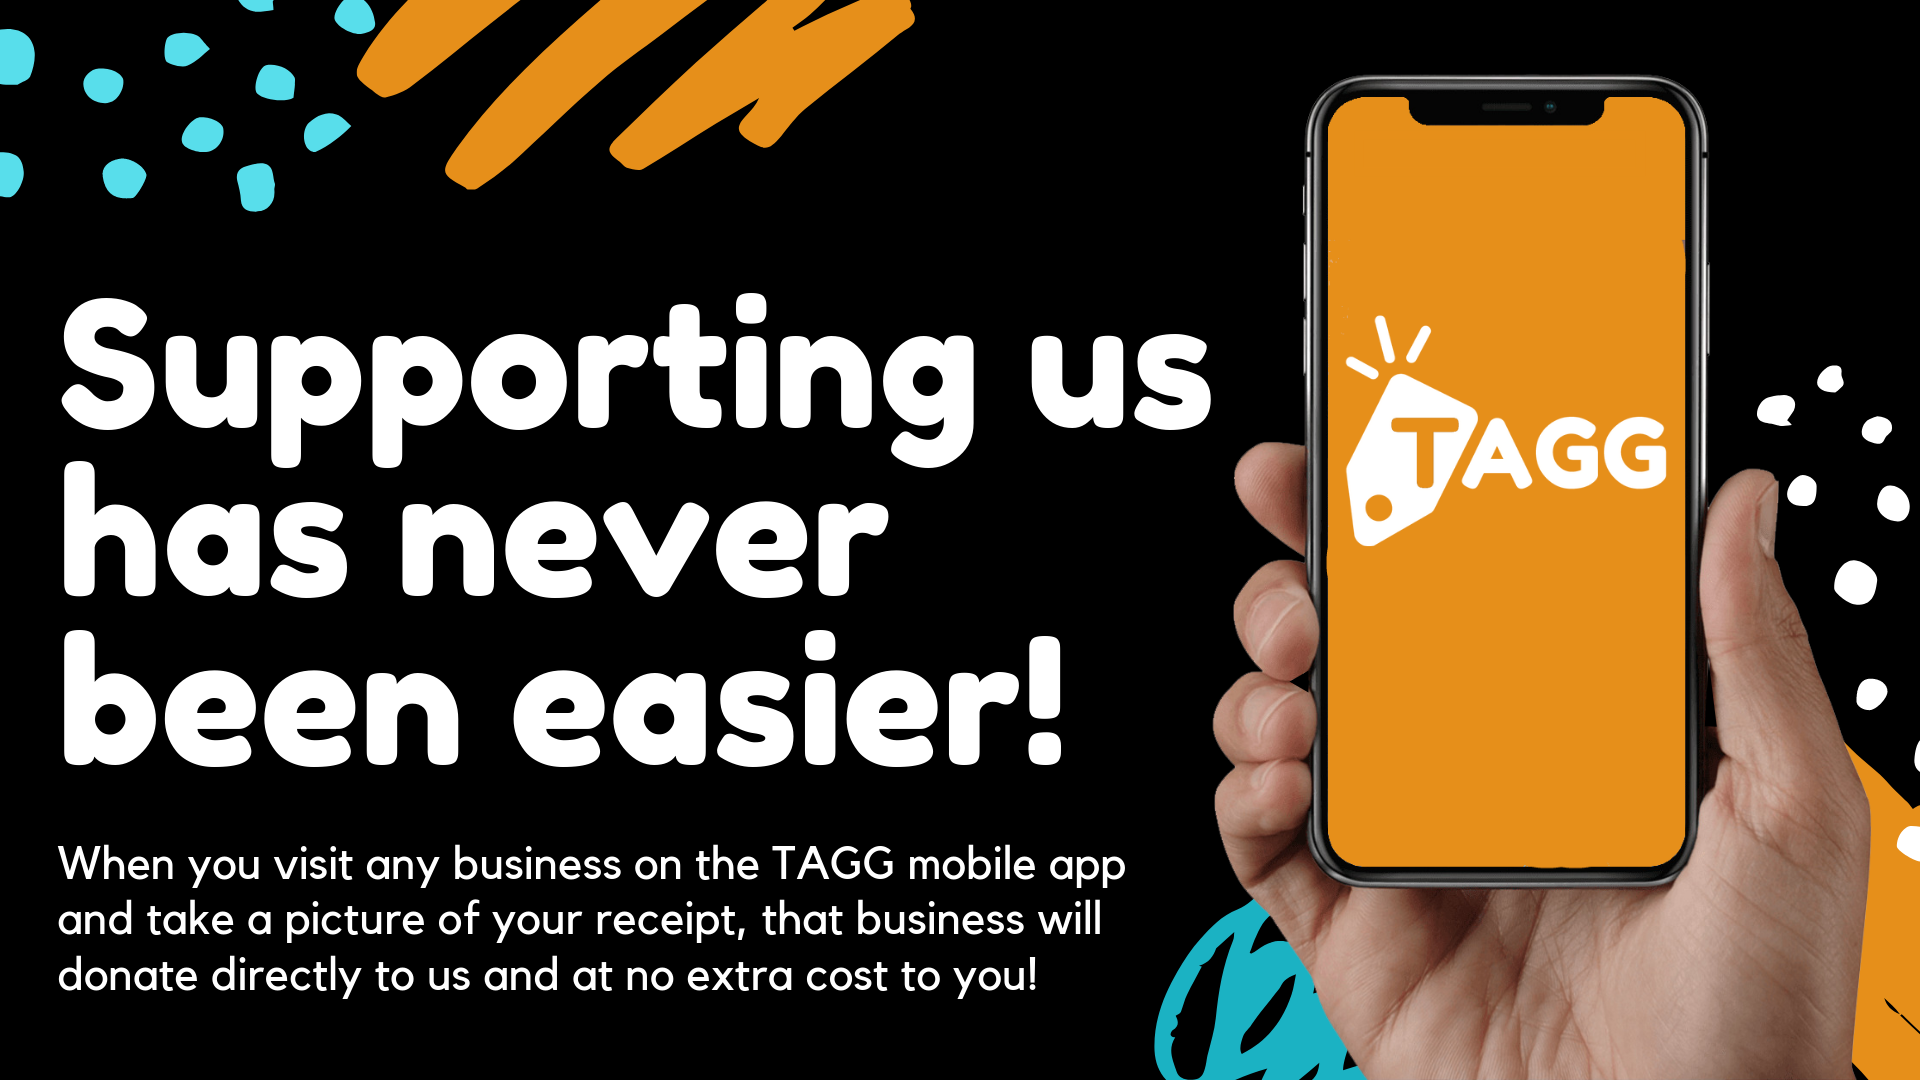 tagg makes it easy to support us